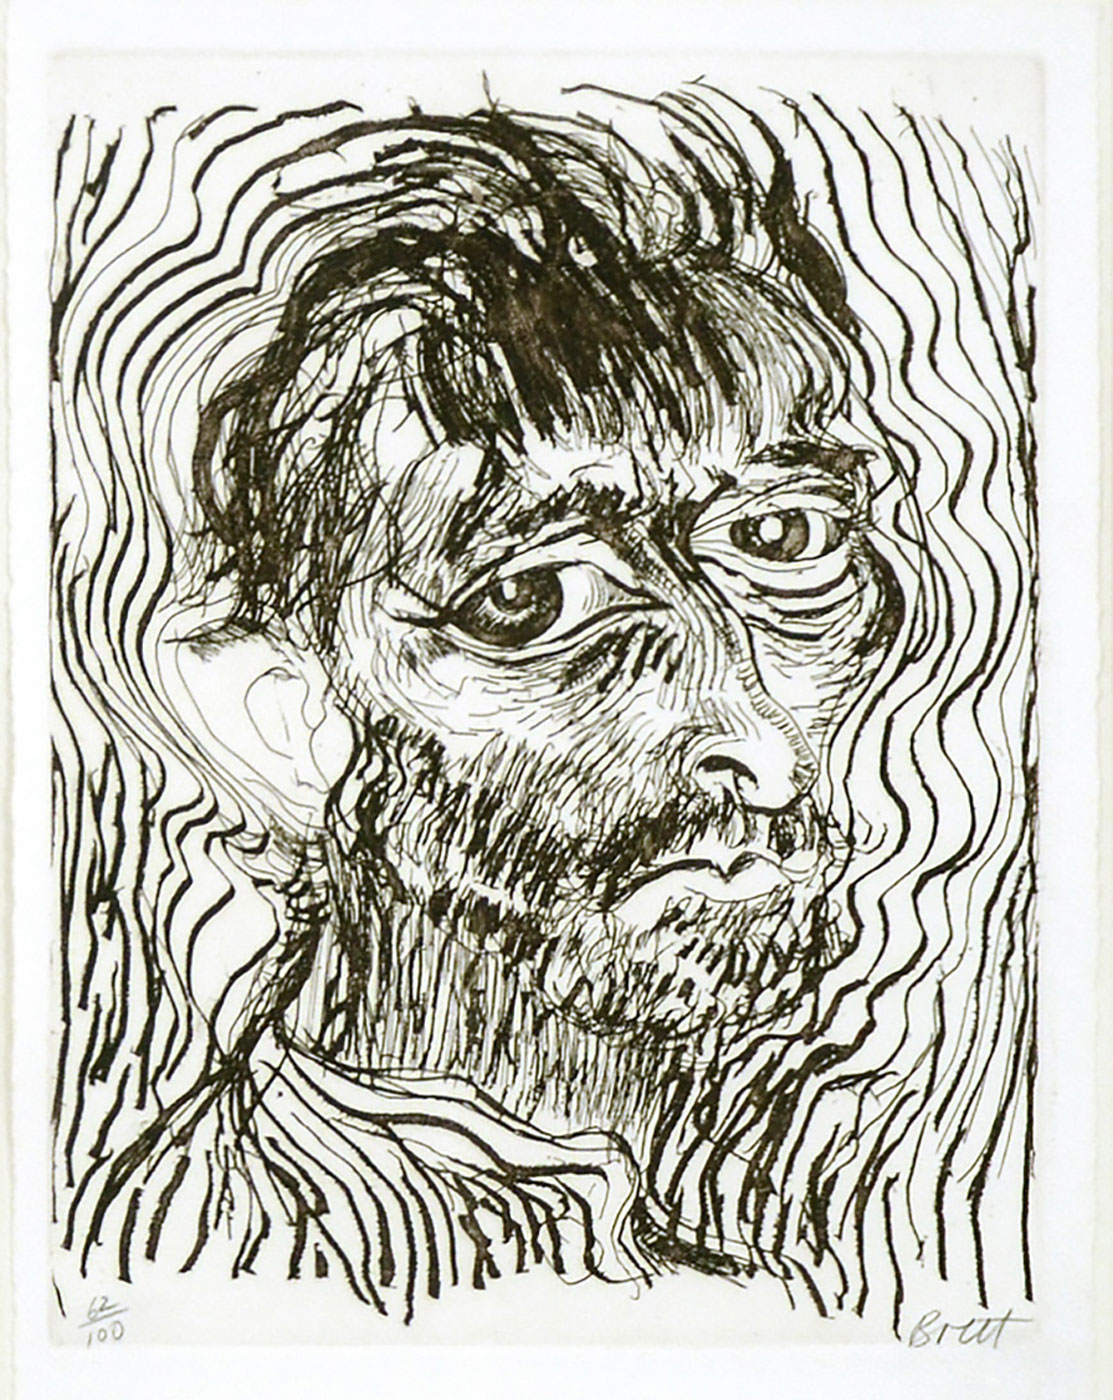 Brett Whiteley, Self Portrait, One of a Dozen Glimpses', 1983, etching and aquatint.